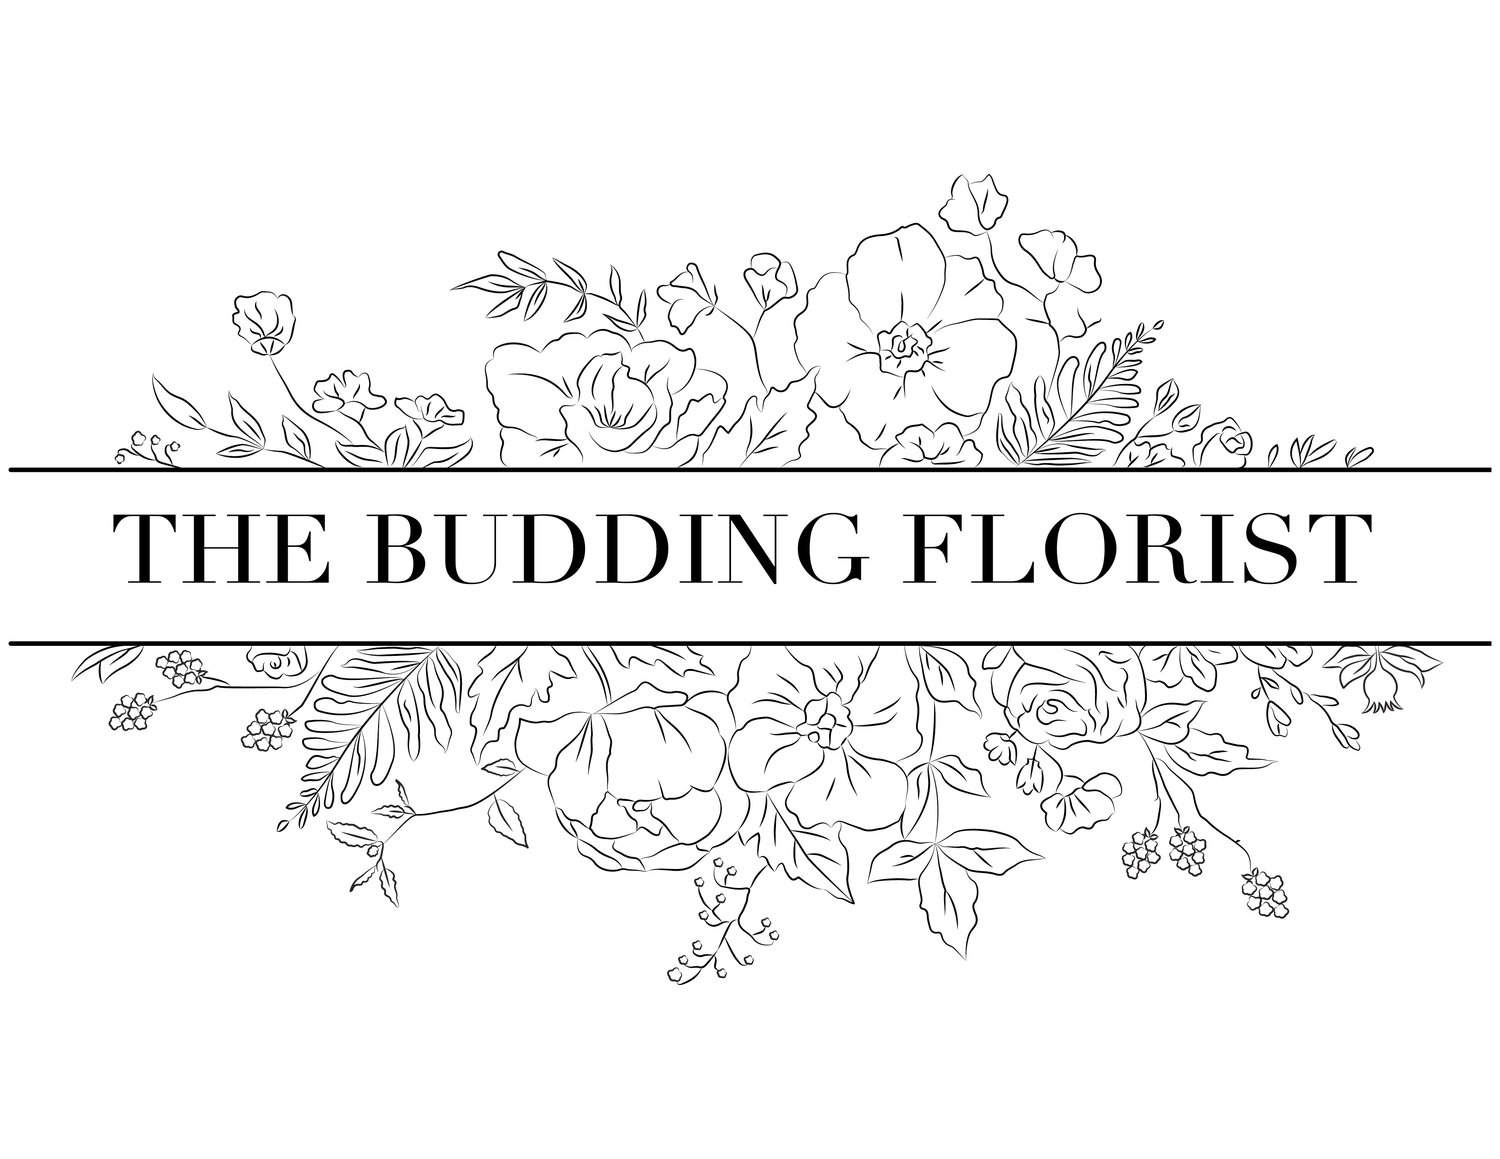 The Budding Florist